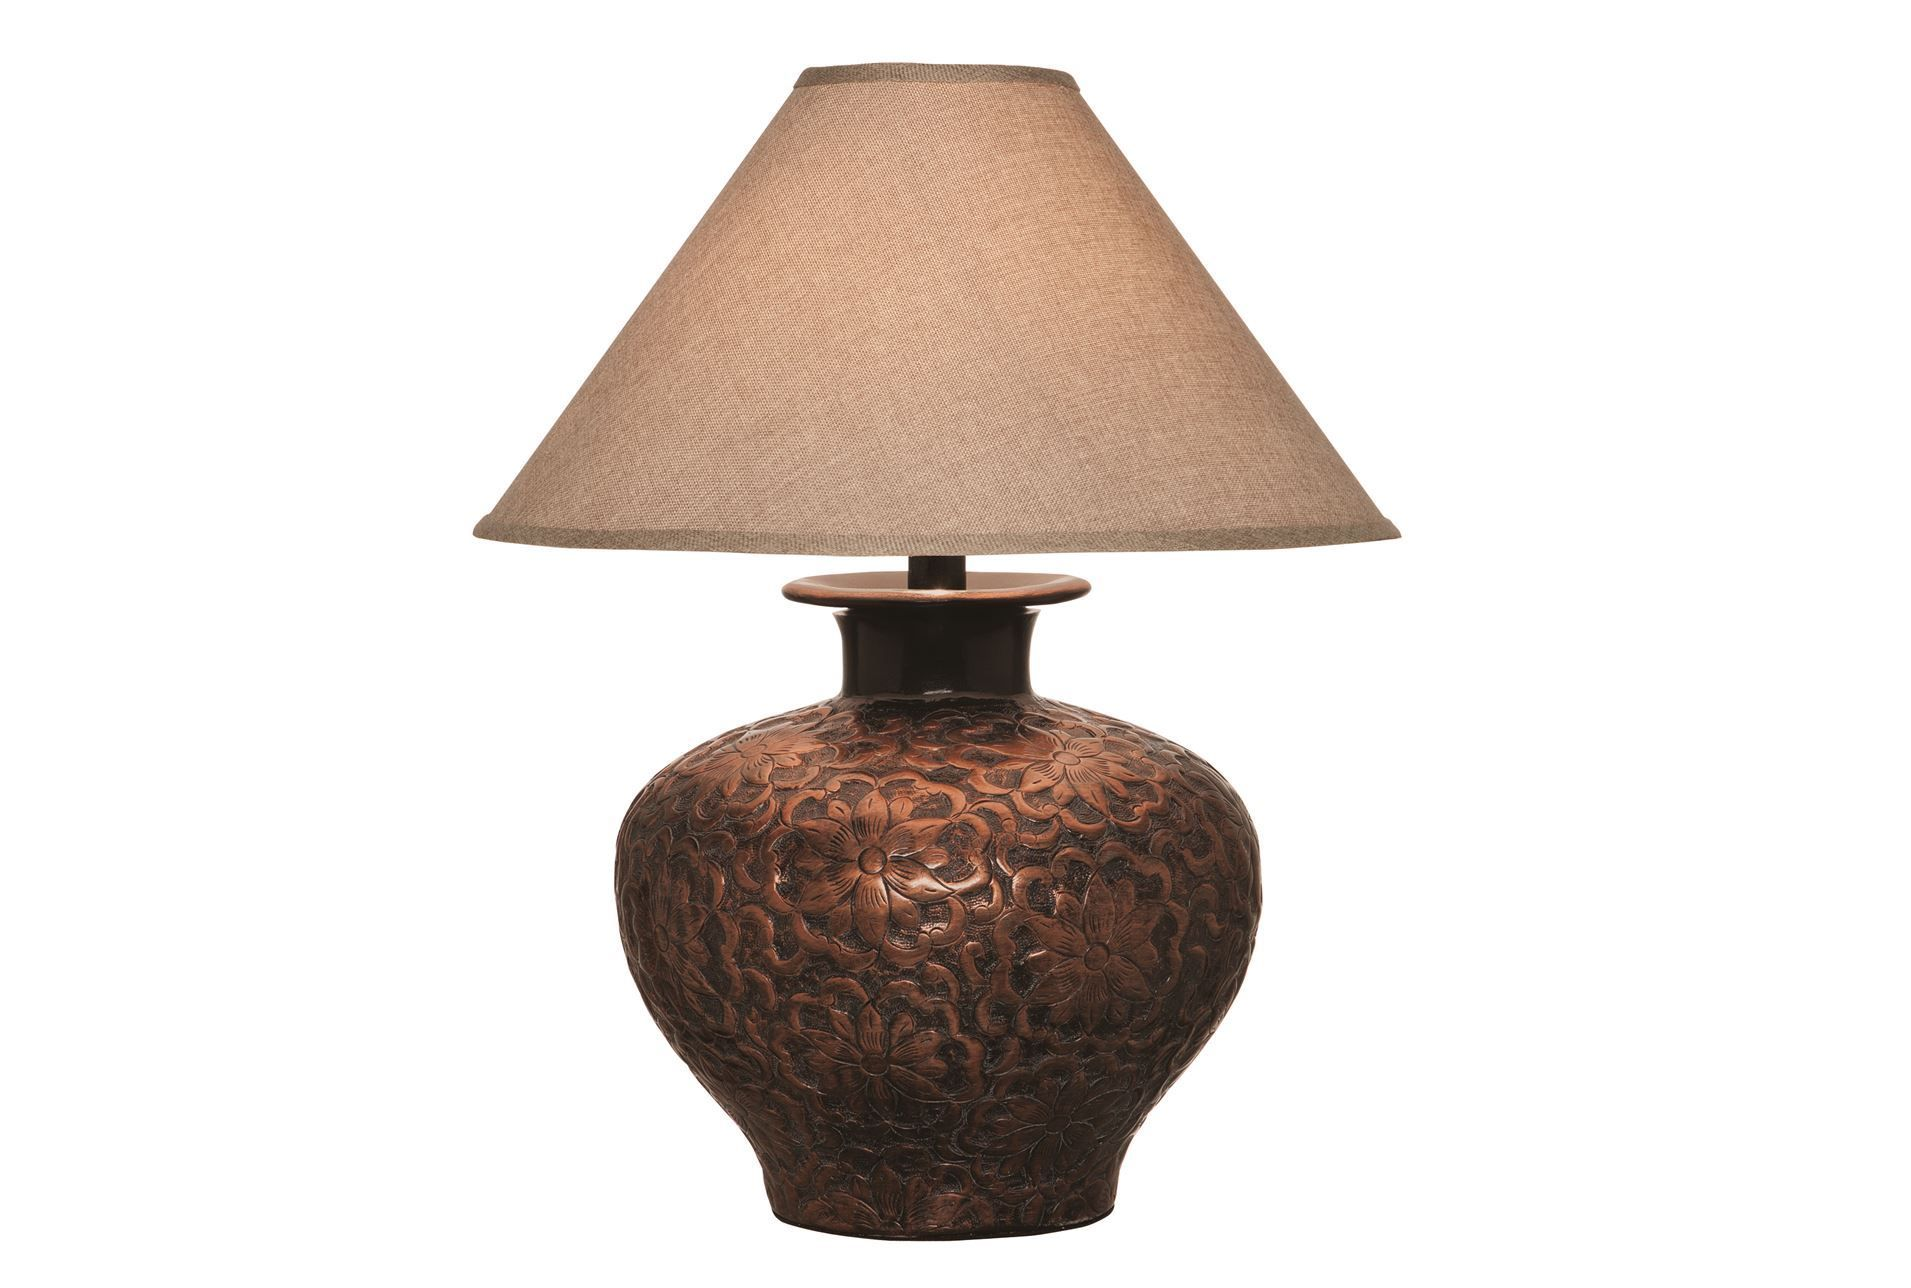 Table Lamp Hammered Copper Silver Table Lamps Copper Table Lamp